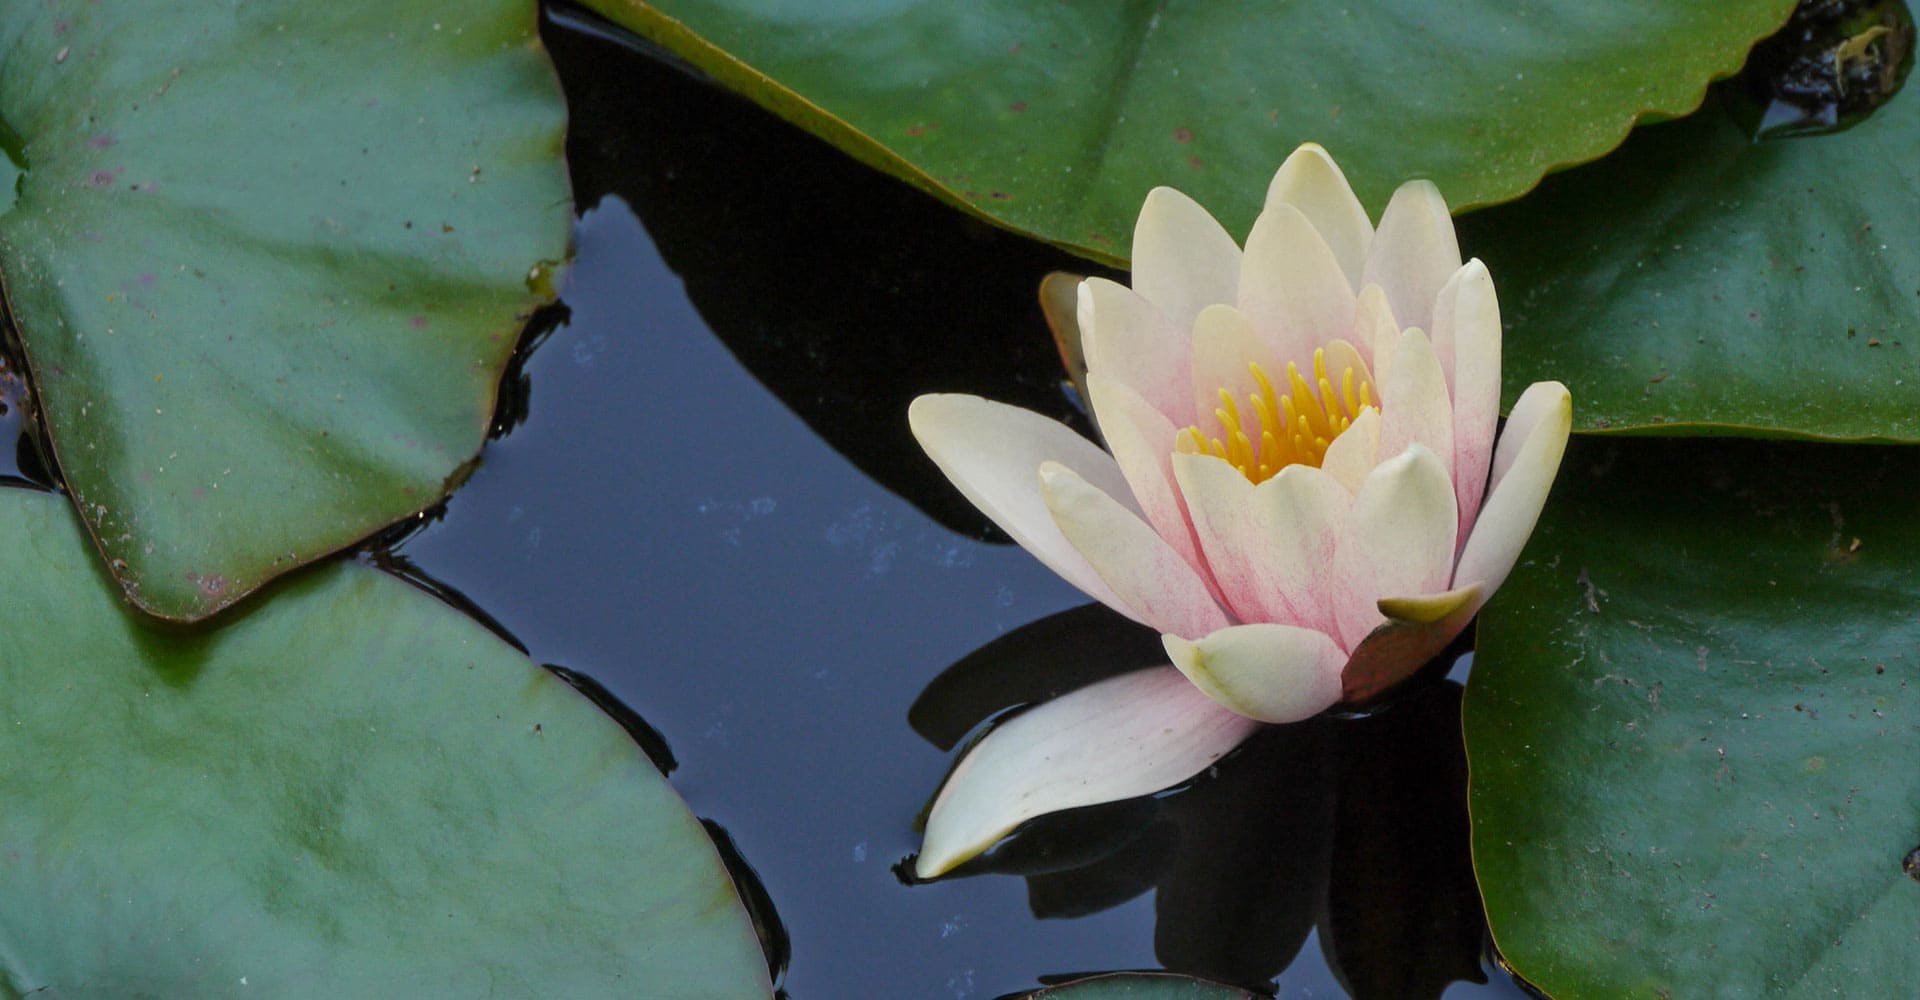 Image of a Lotus among Lily Pads